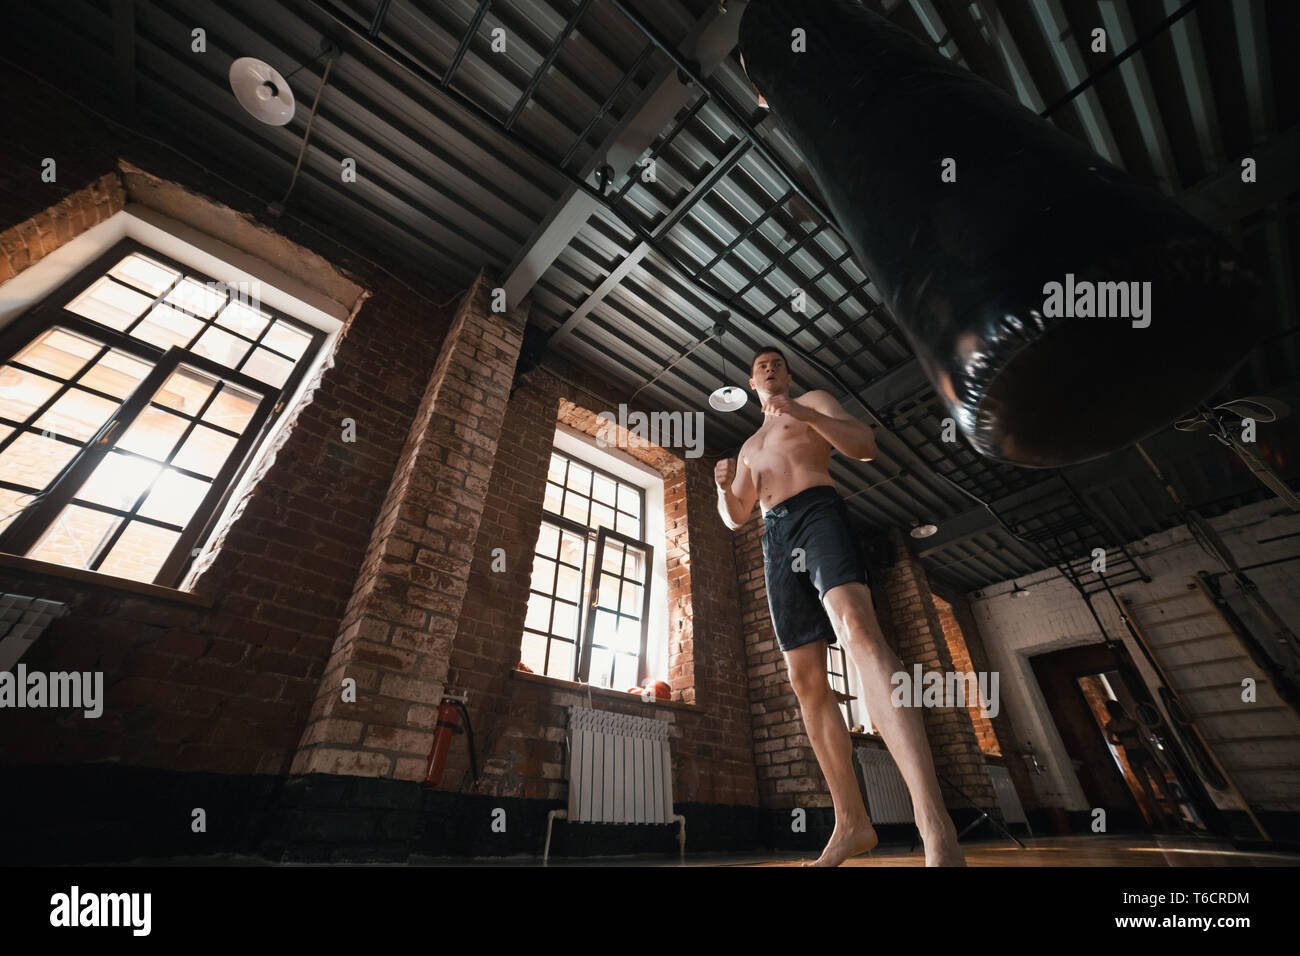 A man boxer training with a punching bag in the gym - Stock Image